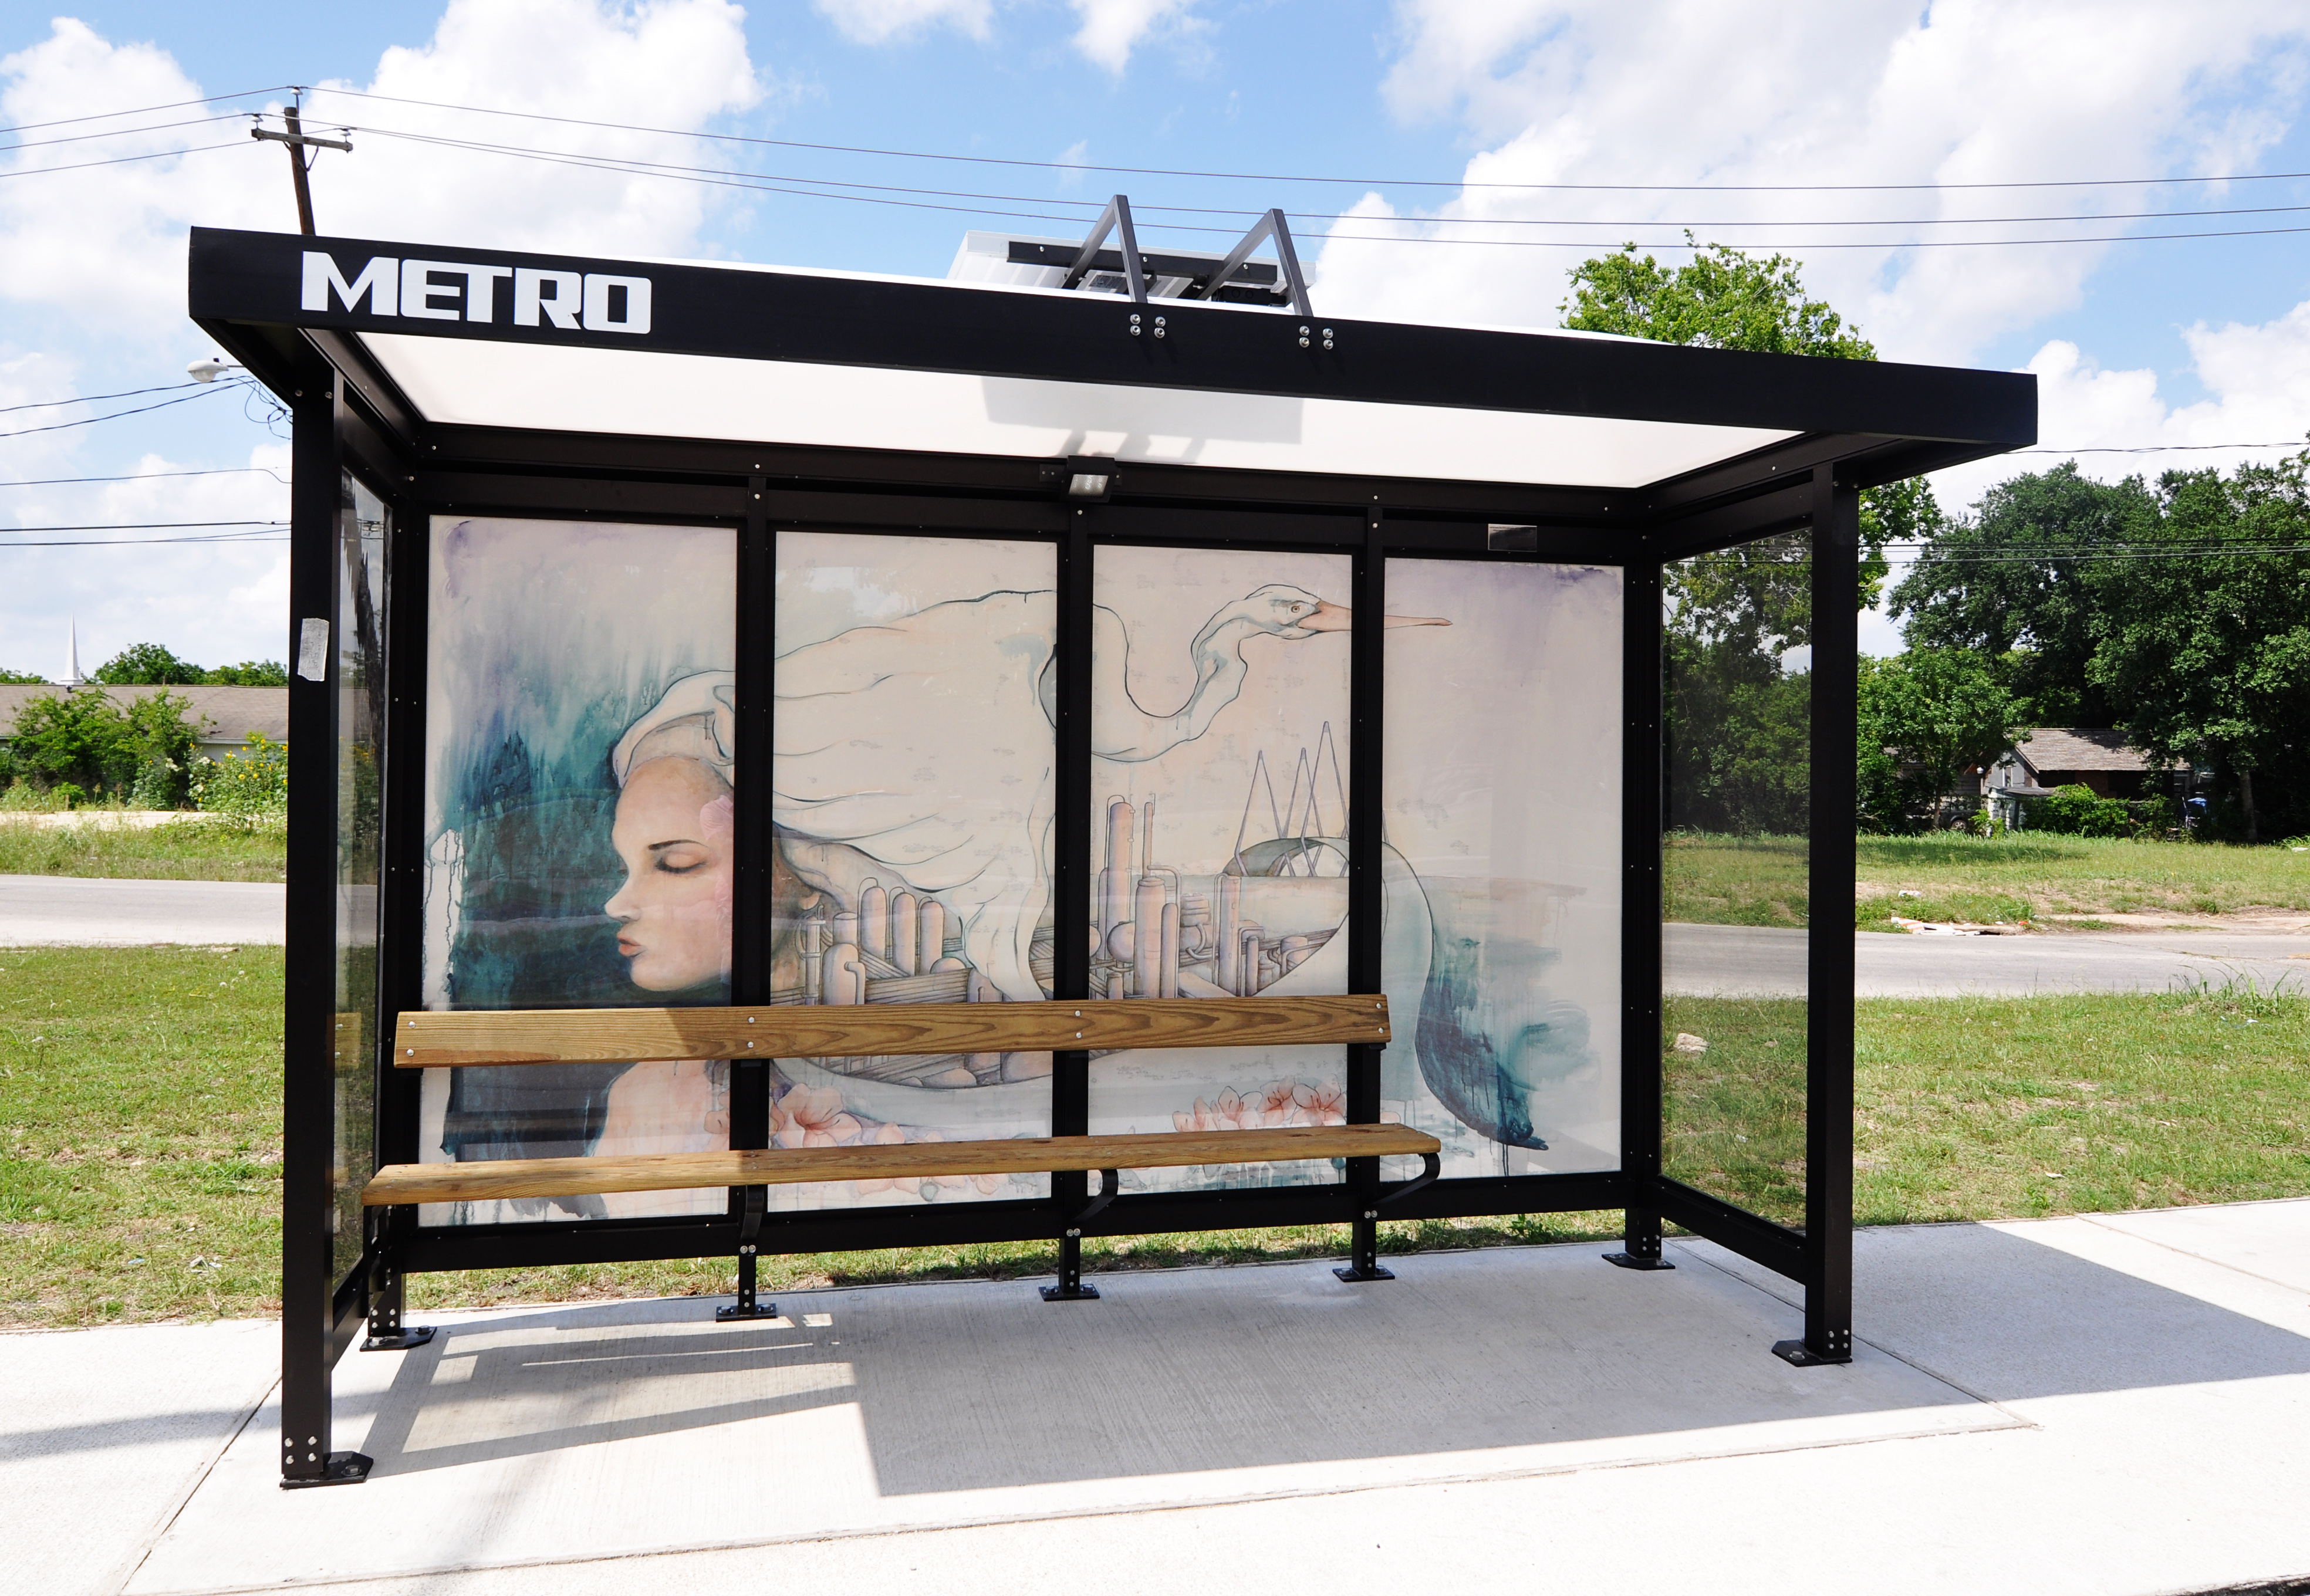 Bus Stop Shelters : Why bus shelters matter more than you think offcite